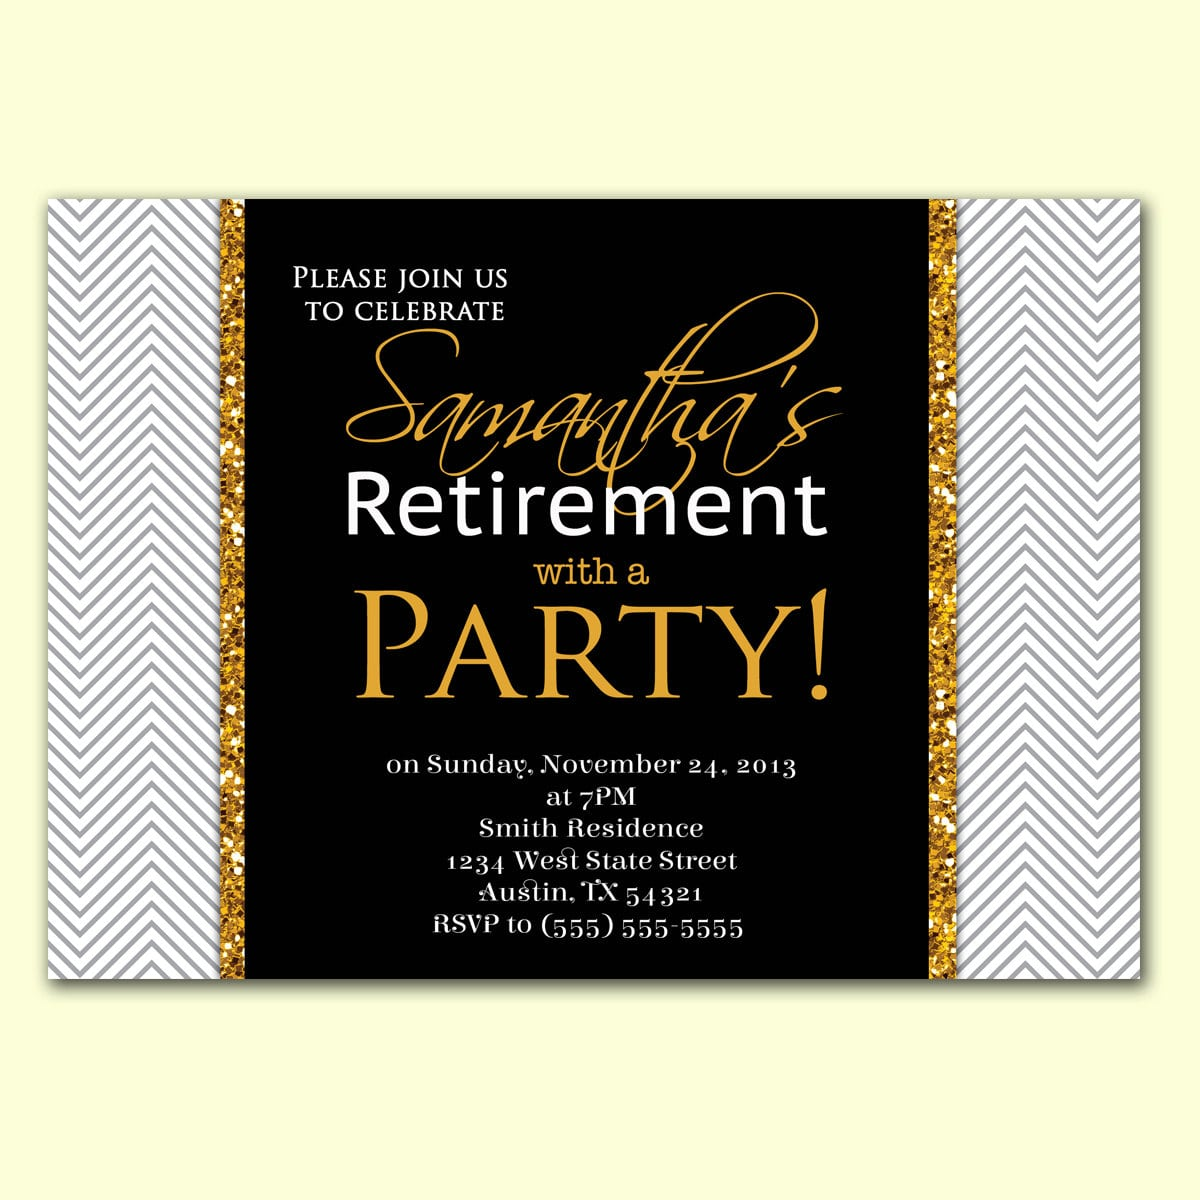 Retirement Party Email Invitation Templates